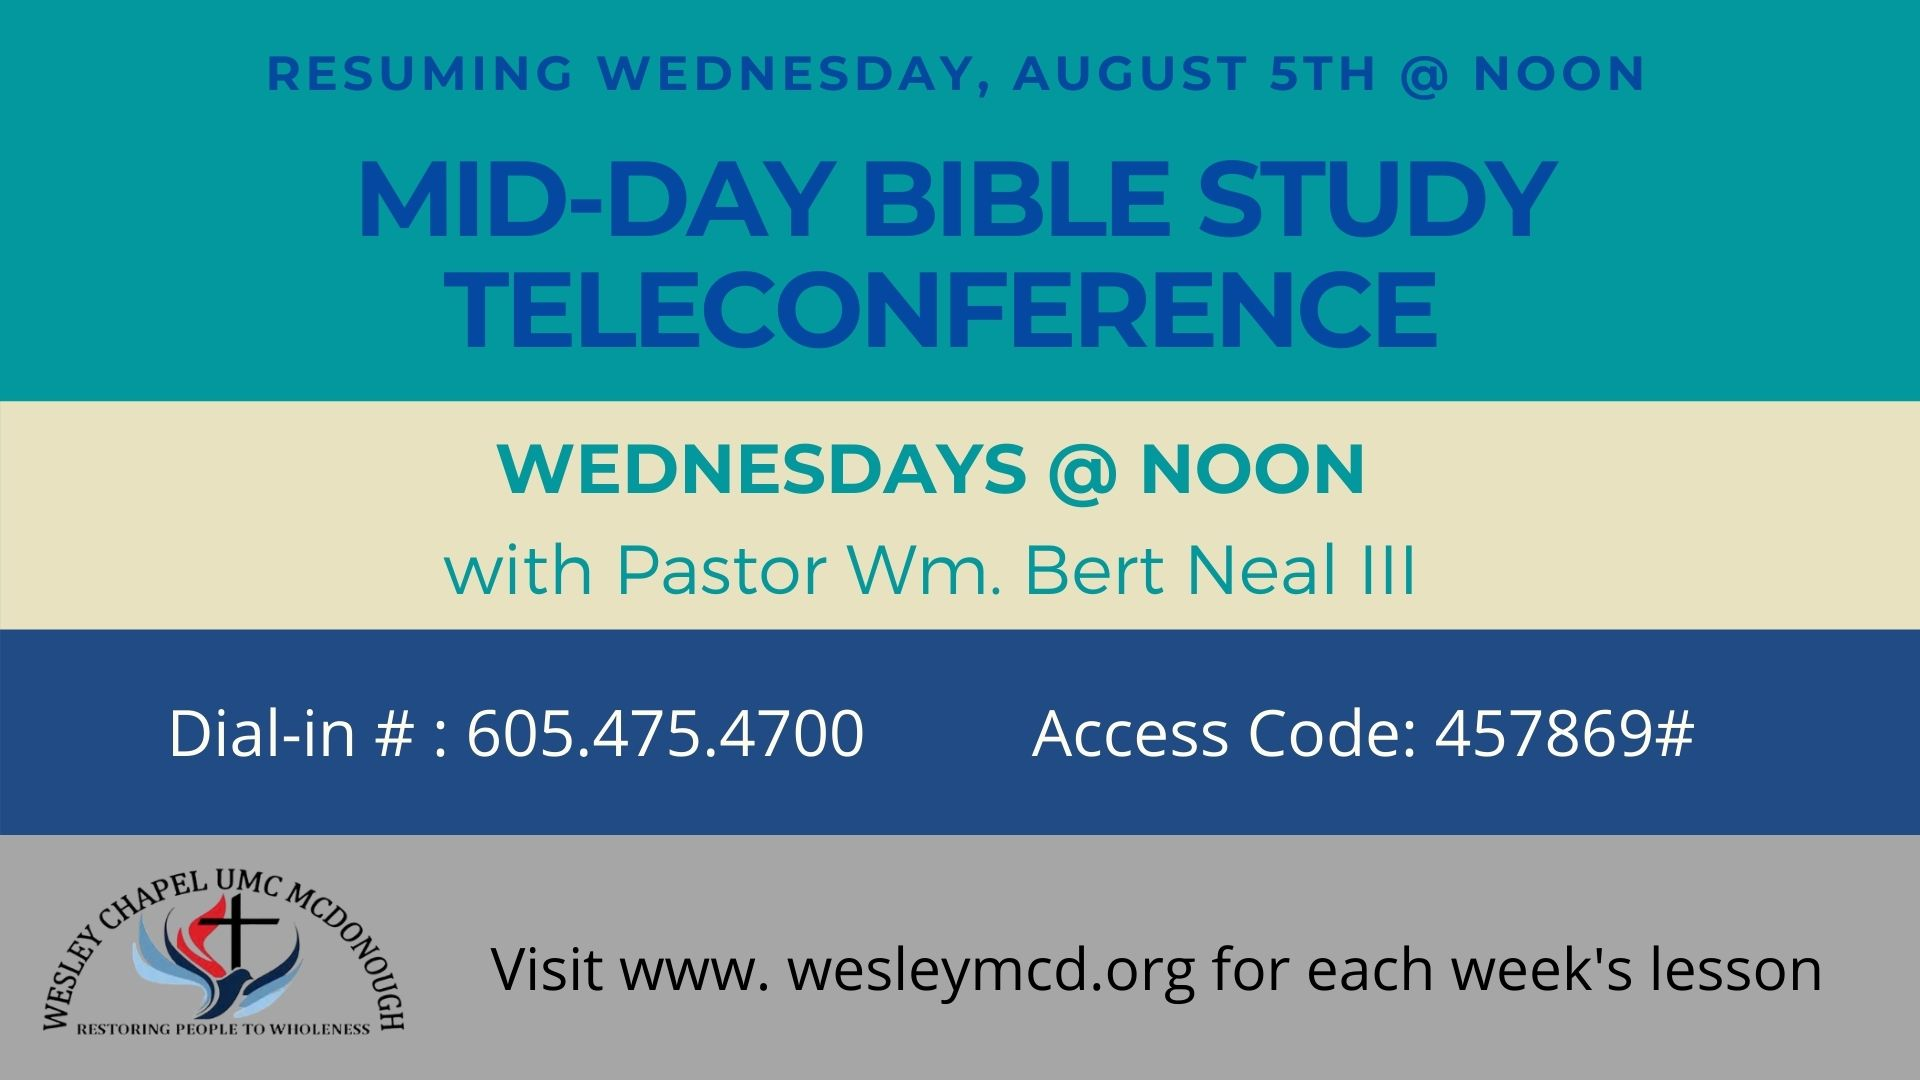 RESUME MID-DAY BIBLE STUDY TELECONFERENCE 77